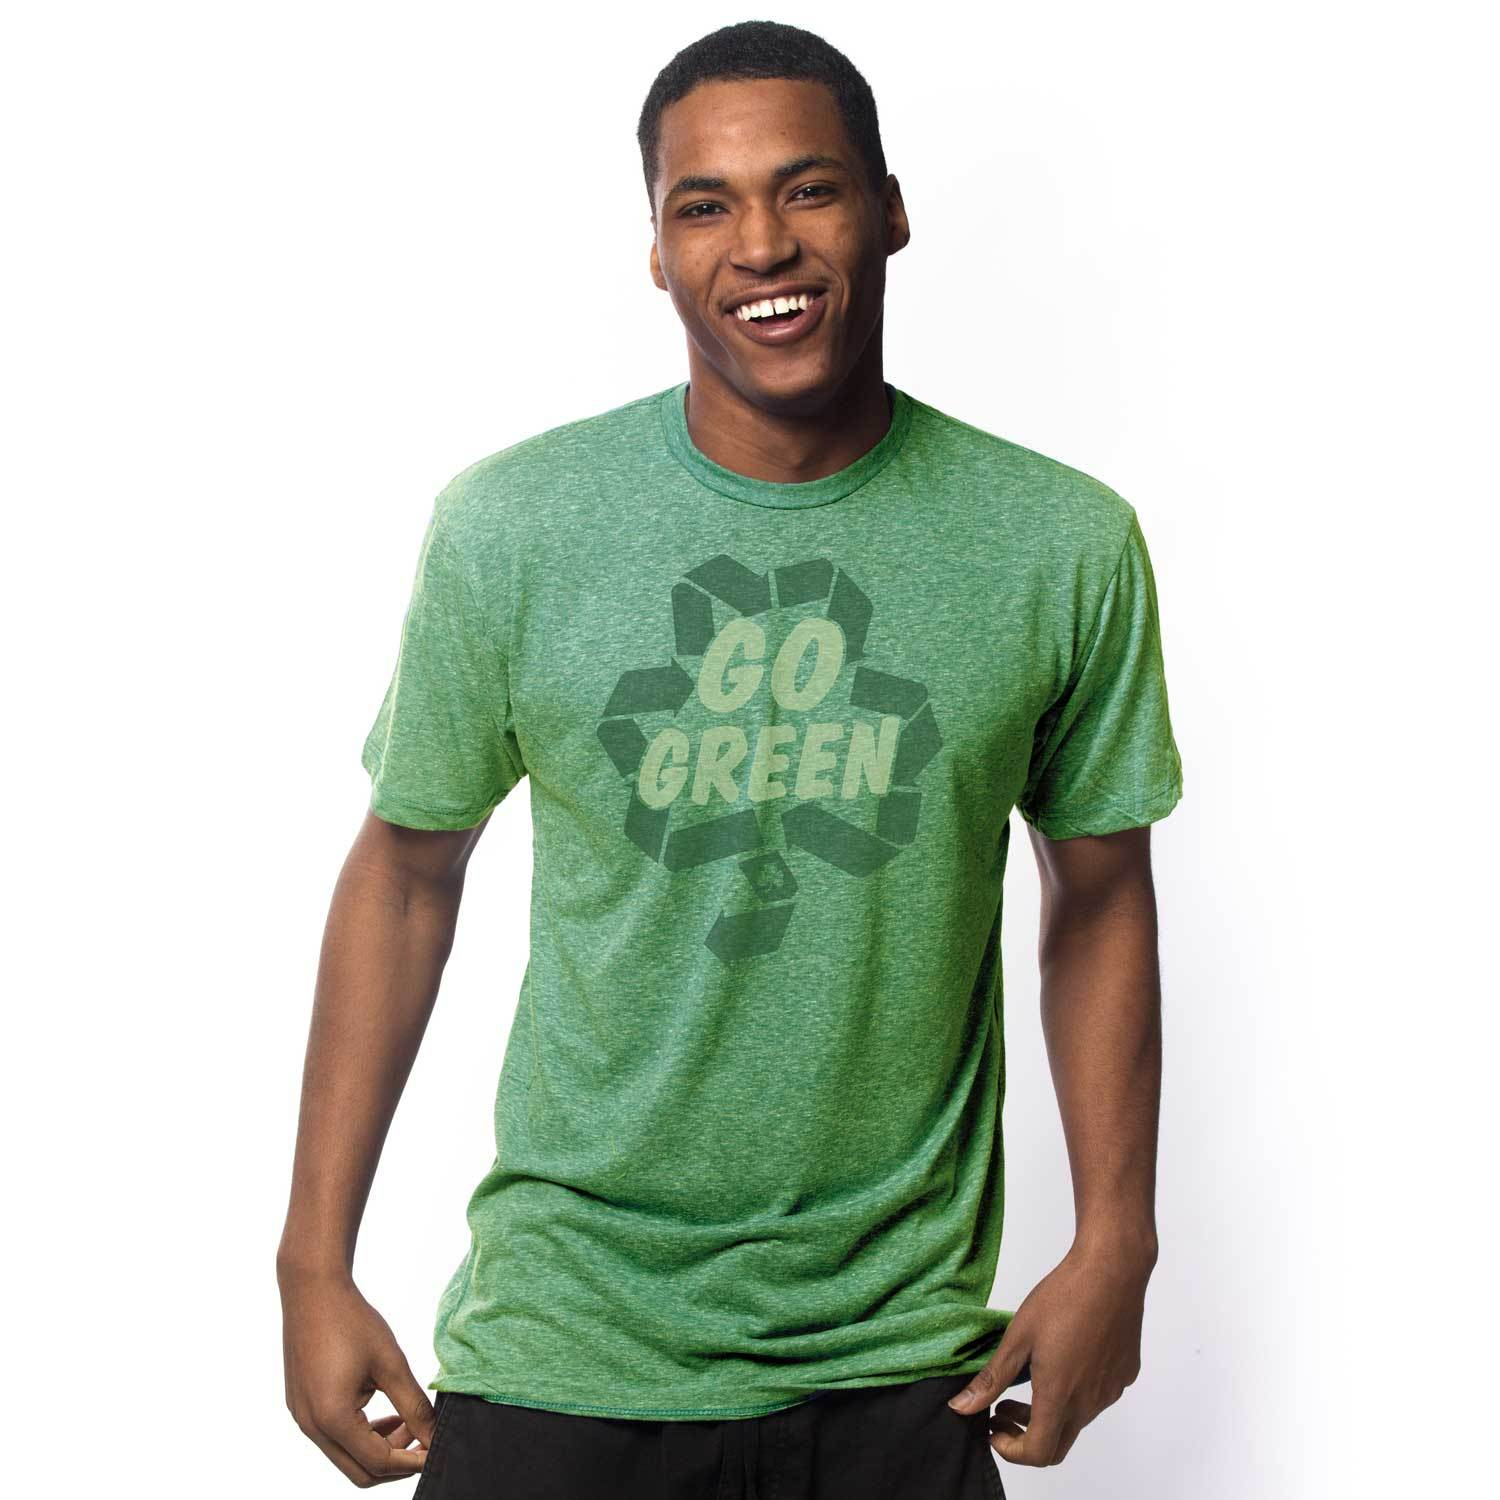 Men's Go Green Vintage Inspired T-shirt with funny St. Paddy's graphic | Solid Threads